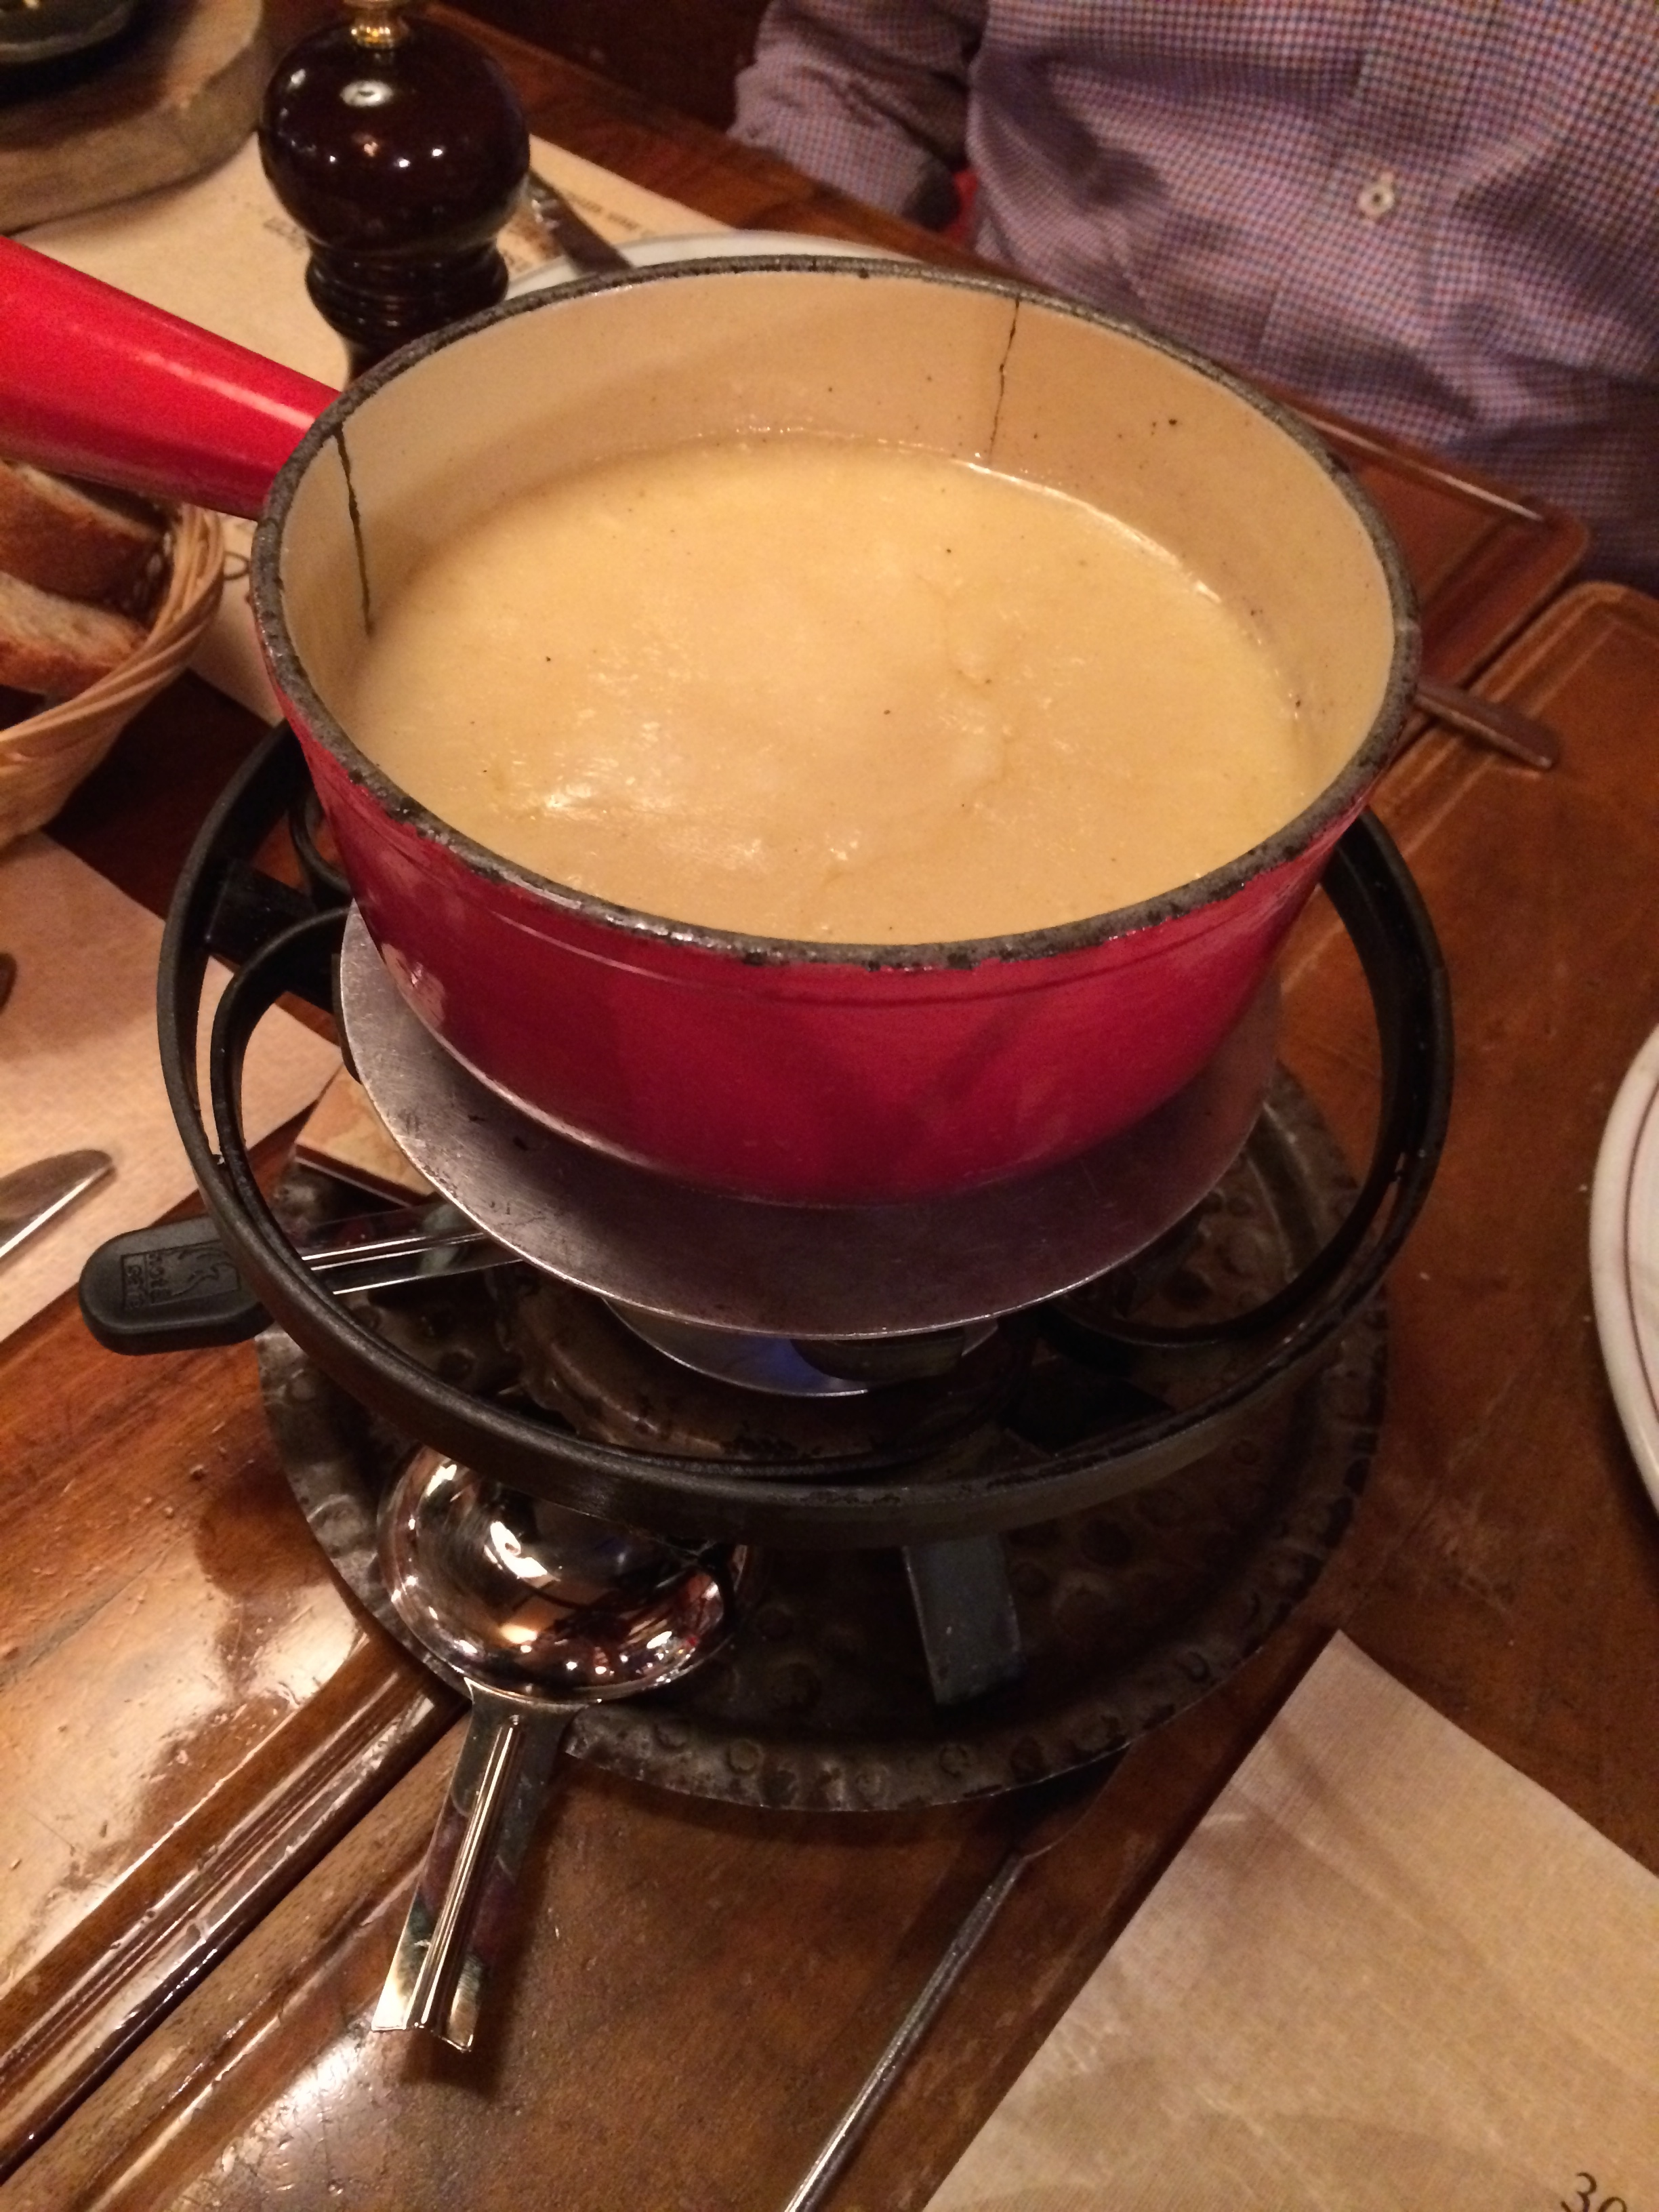 Our first fondue